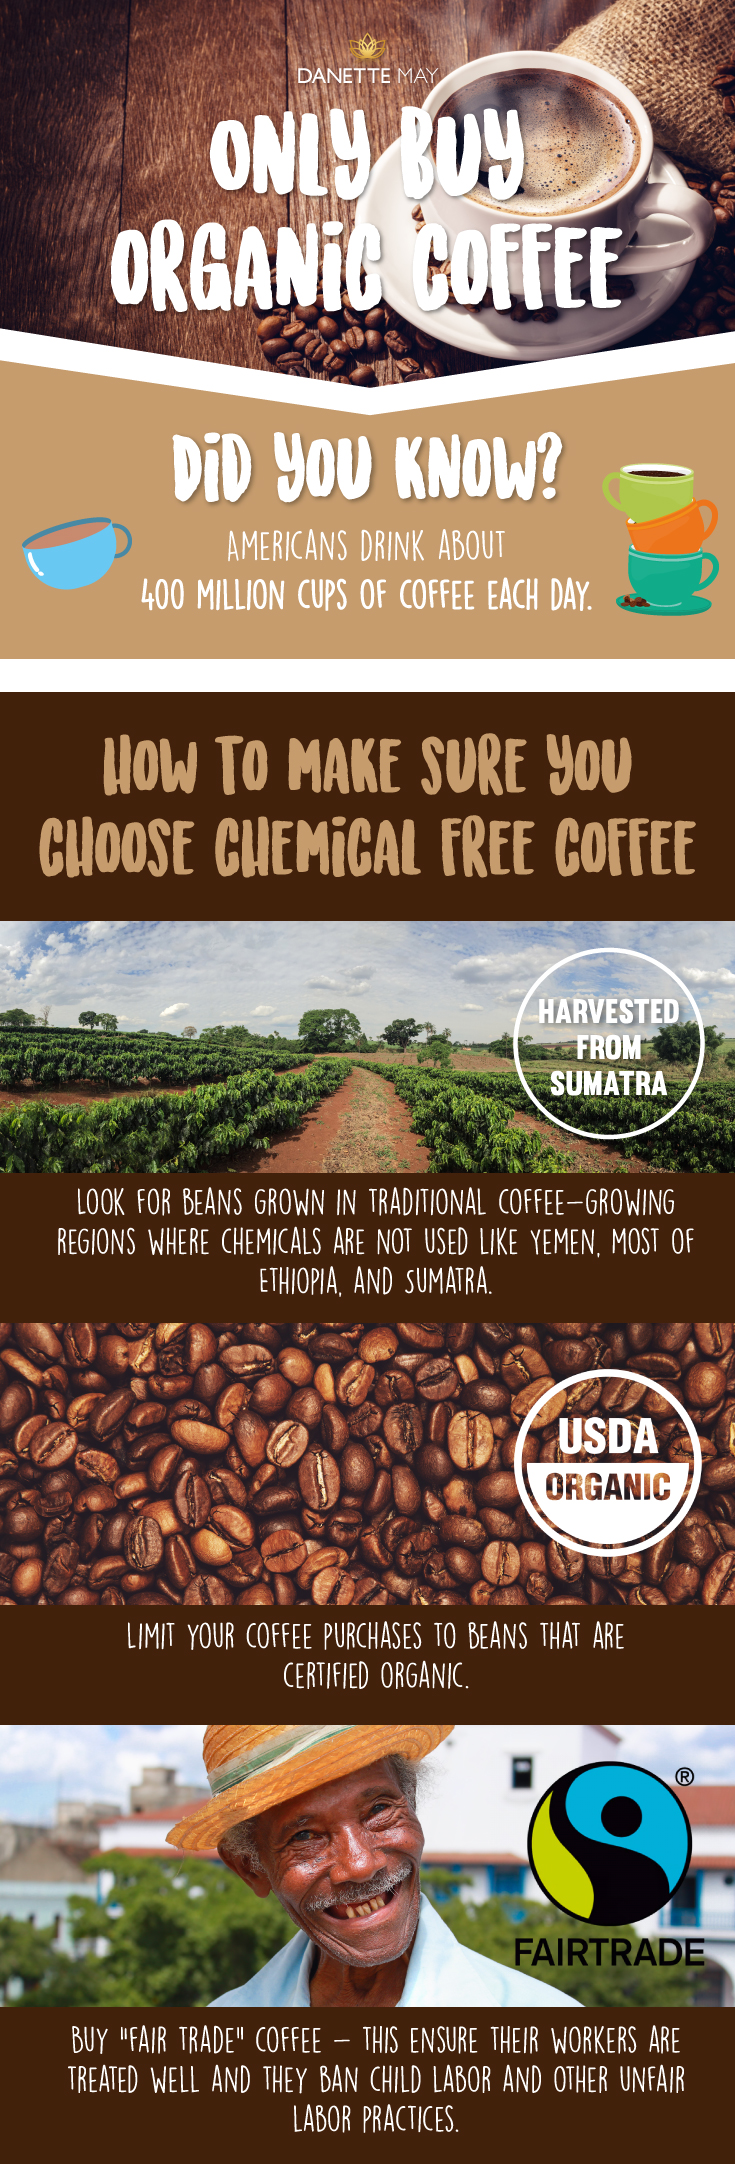 organic coffee infographic